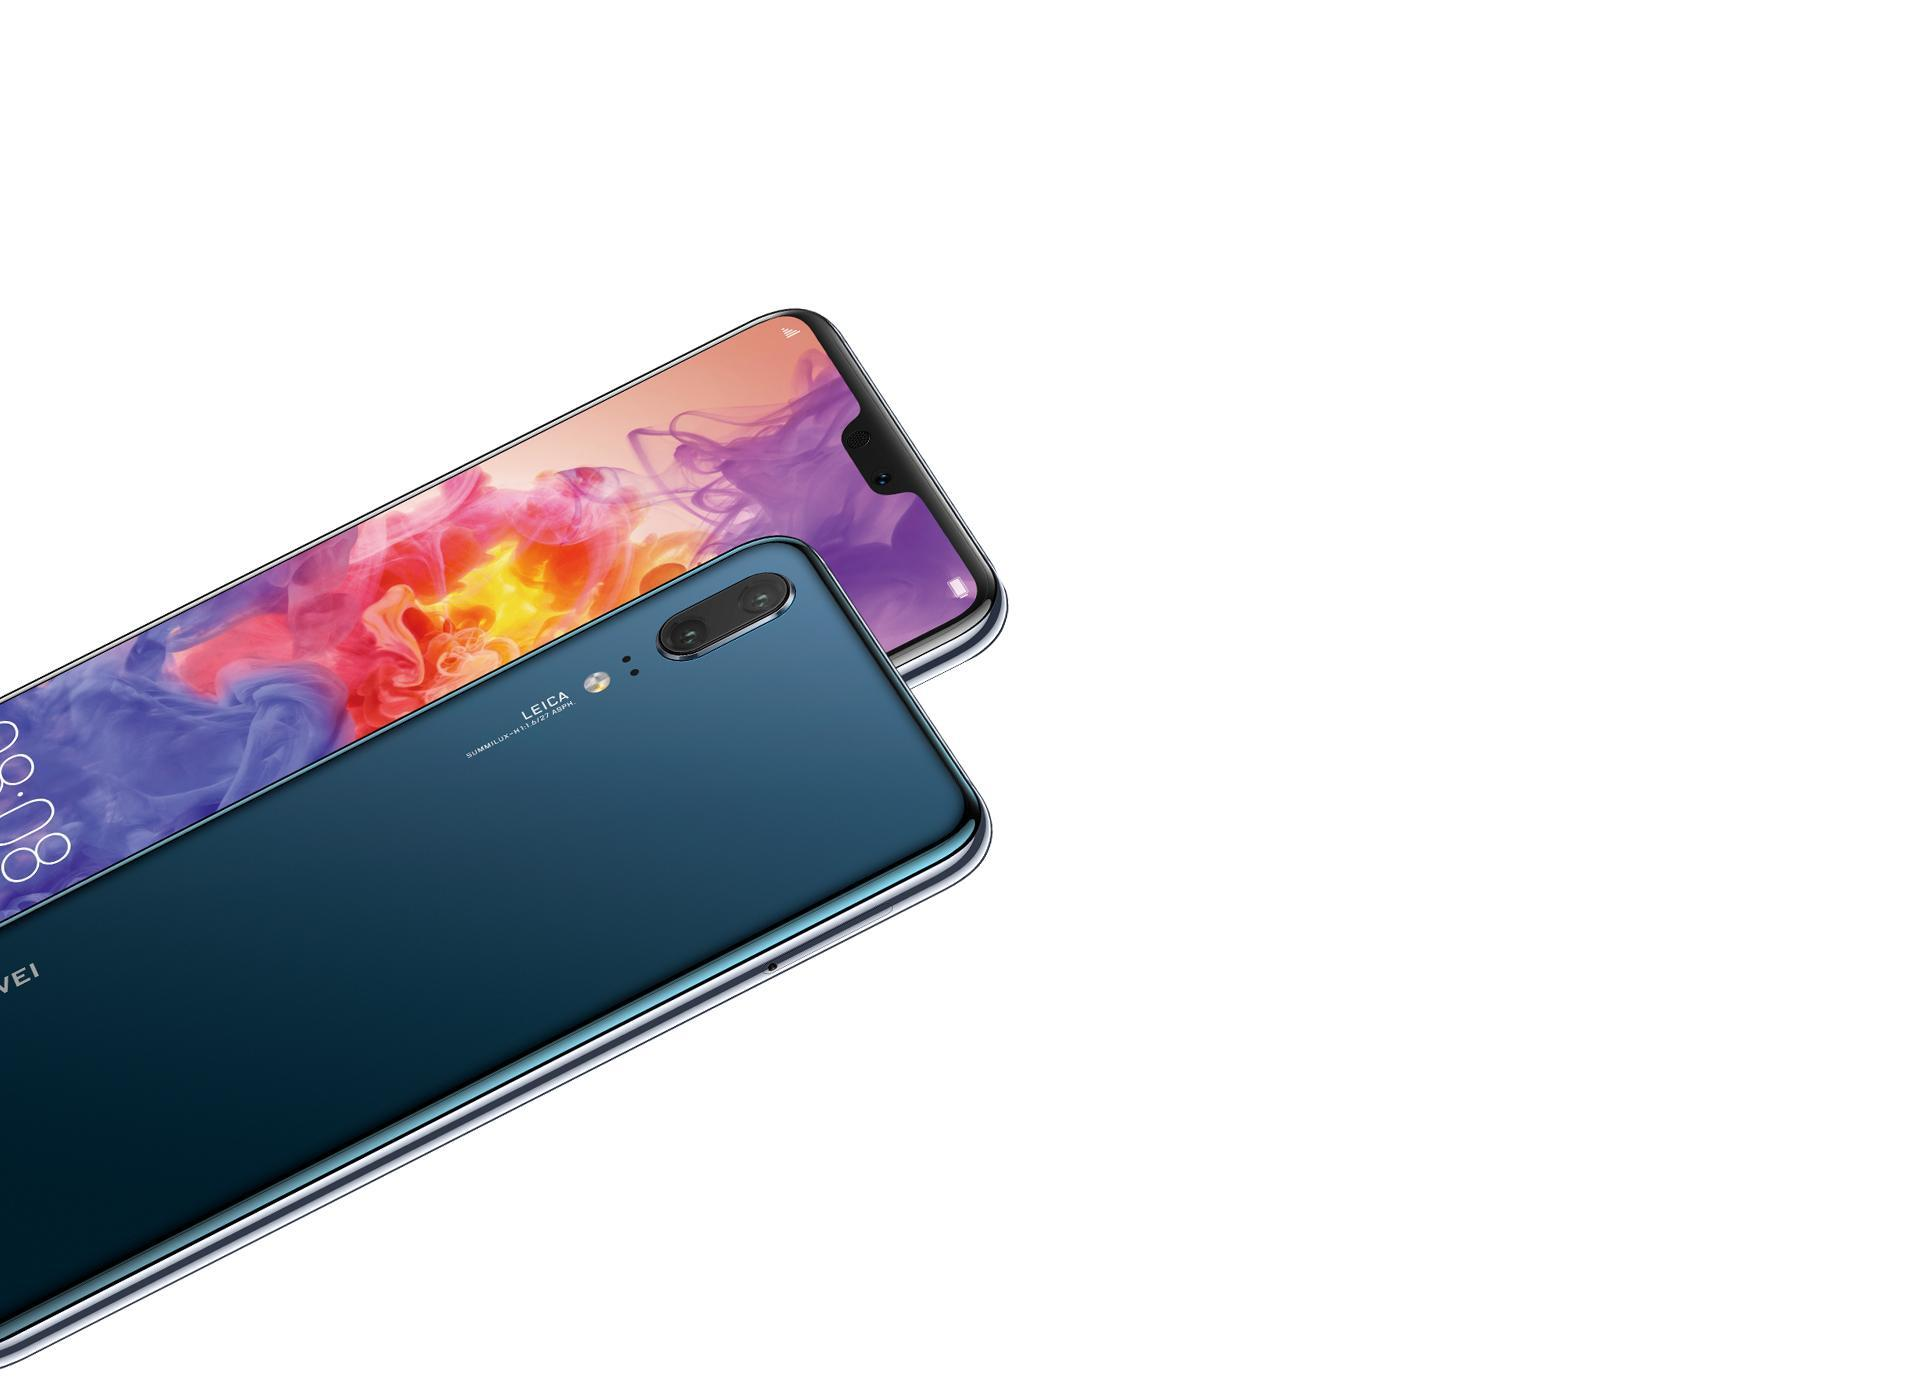 Huawei P20 in blue color